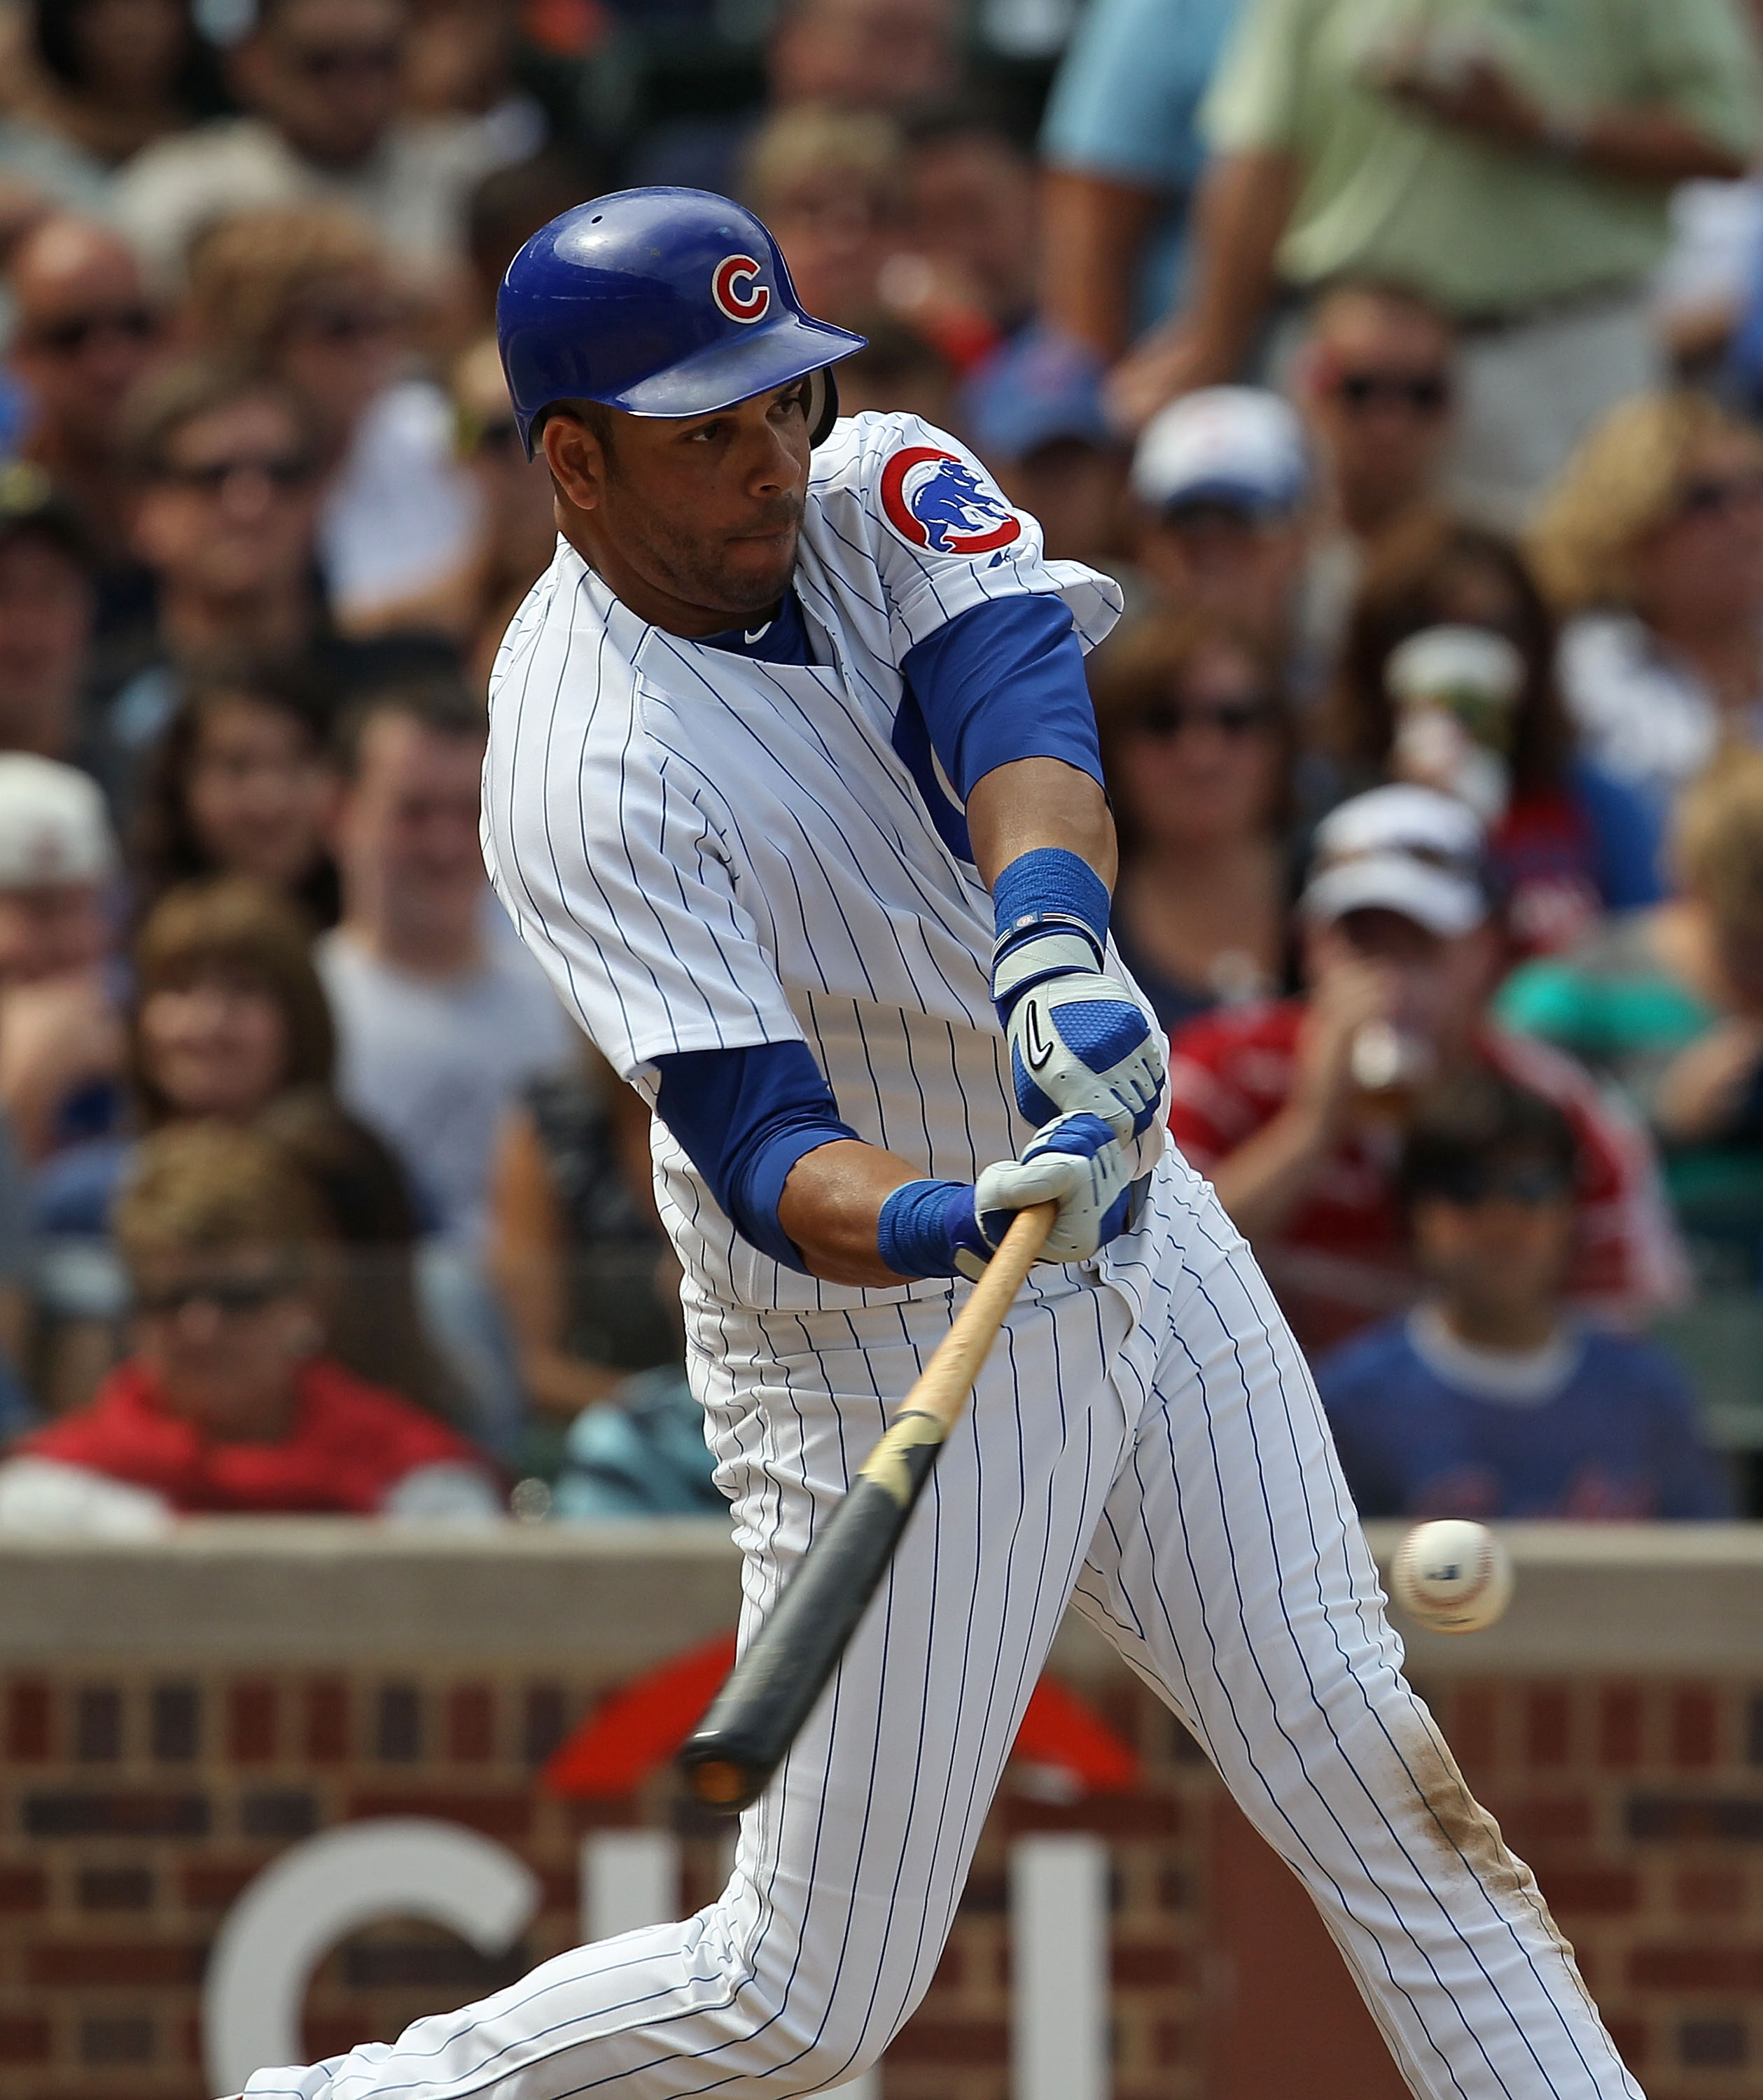 CHICAGO - SEPTEMBER 05: Aramis Ramirez #16 of the Chicago Cubs hits his 22nd home run of the year, a two run shot in the 3rd inning, against the New York Mets at Wrigley Field on September 5, 2010 in Chicago, Illinois. (Photo by Jonathan Daniel/Getty Imag